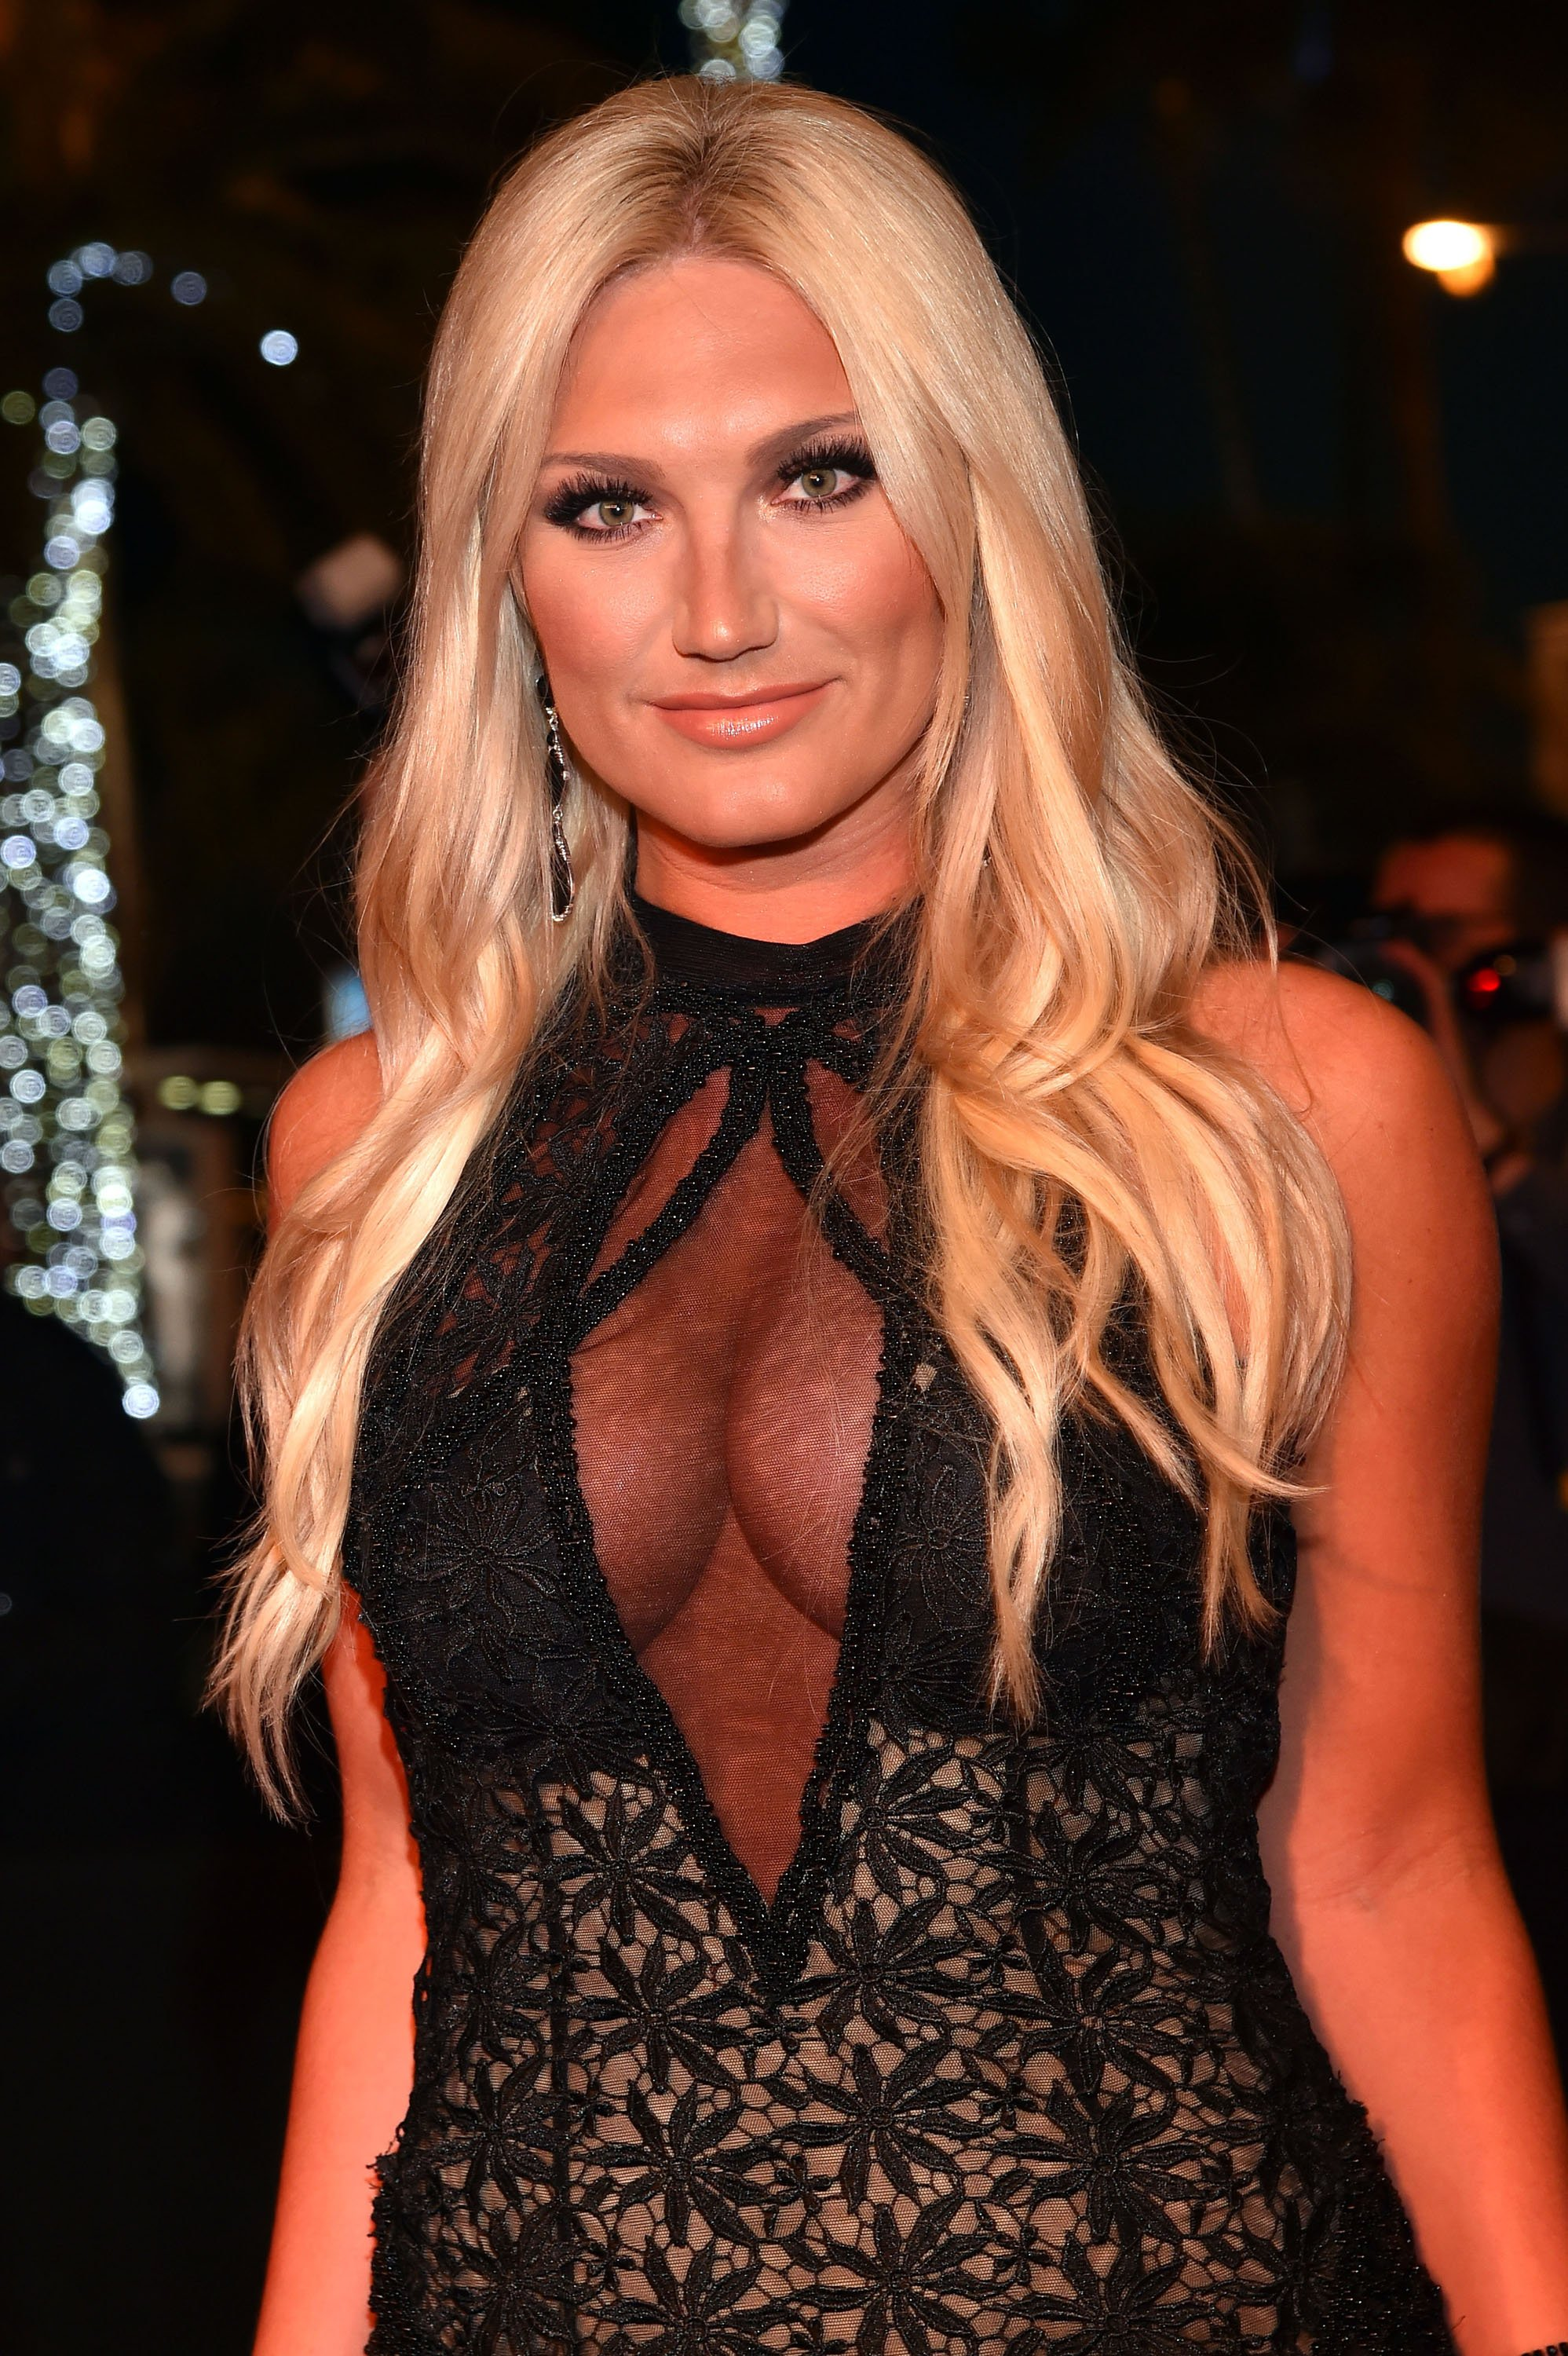 Brooke Hogan photo #778122